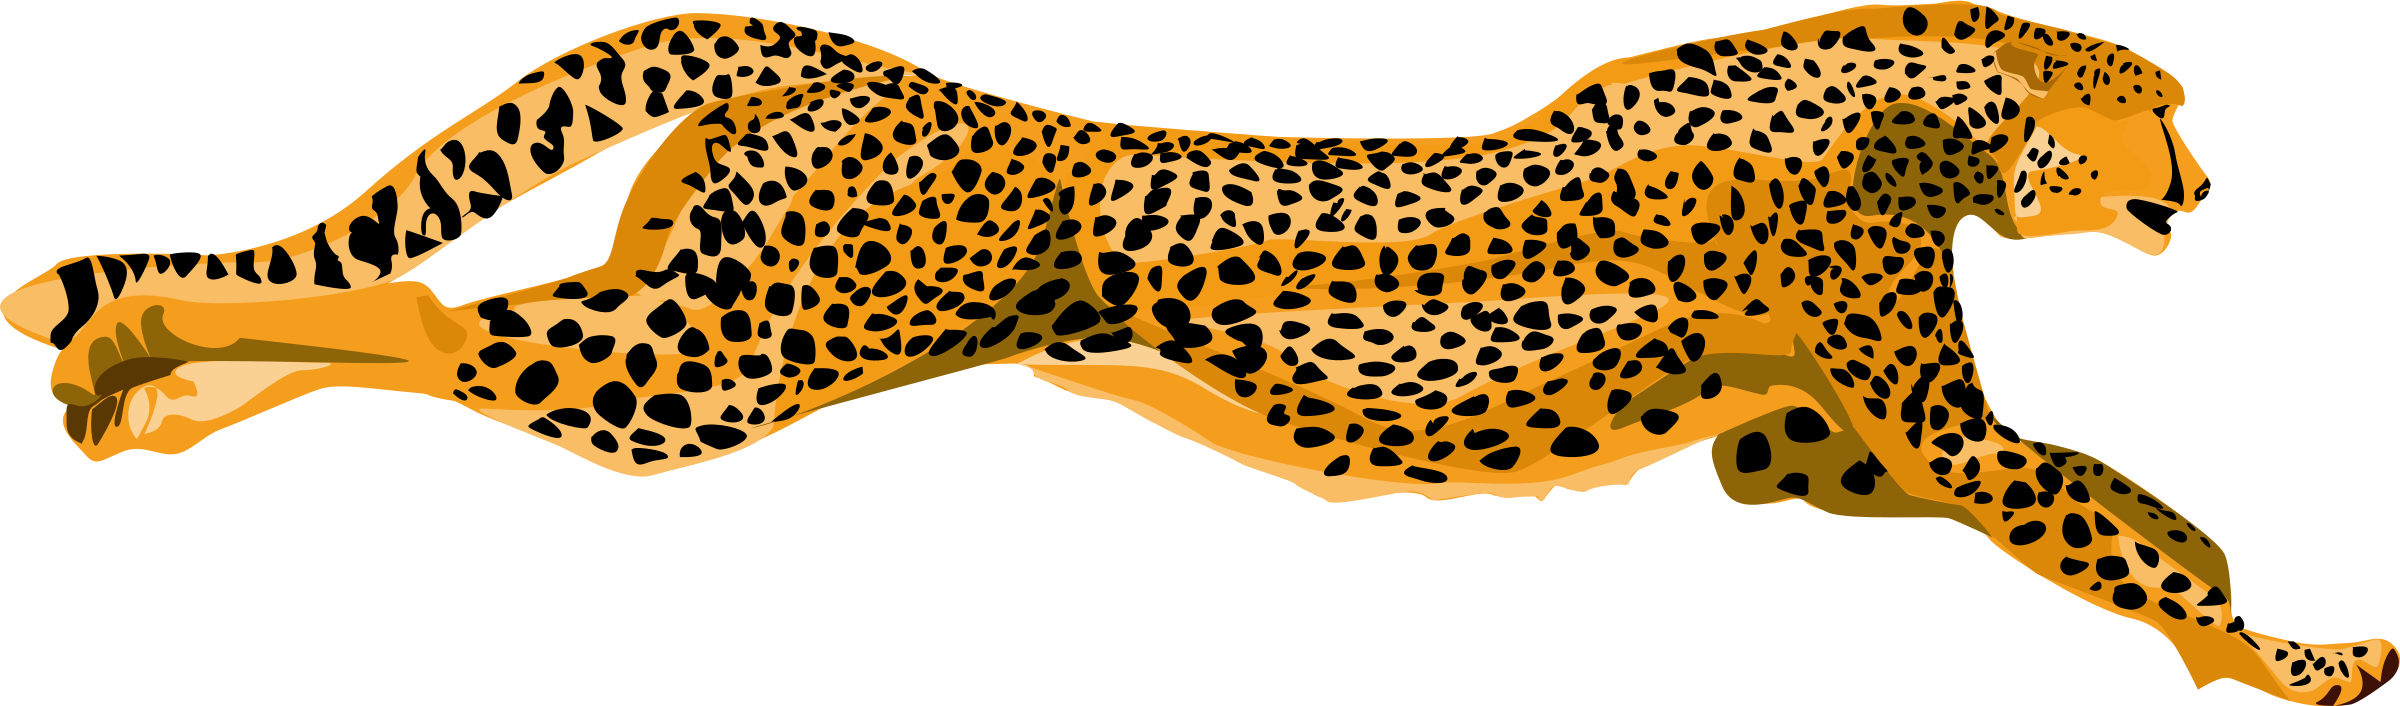 leopard_cheetah by ha1flosse